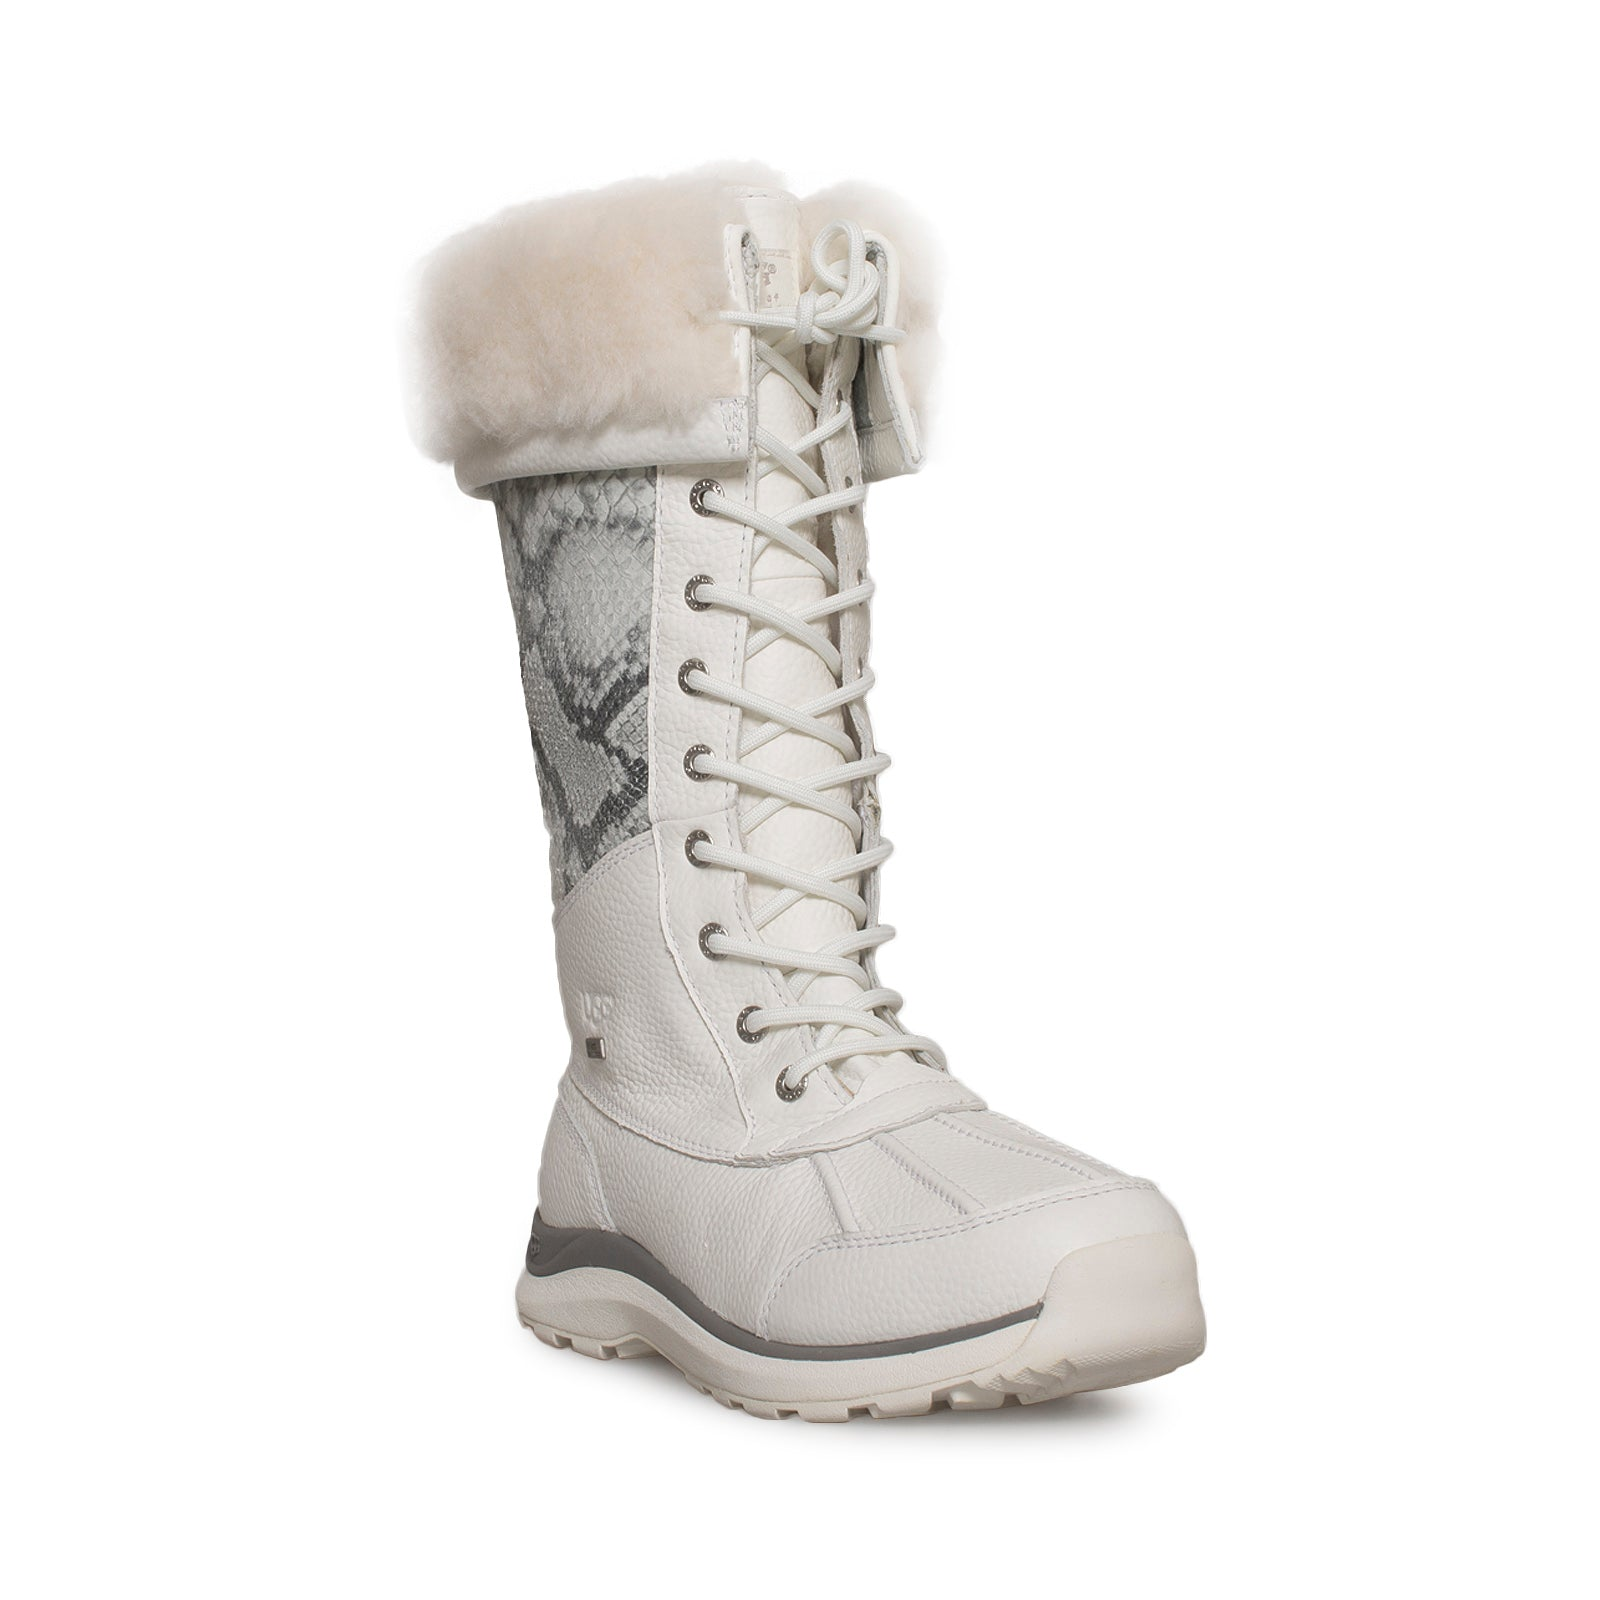 5bcce3dfc UGG Adirondack Tall III Snake White Boots